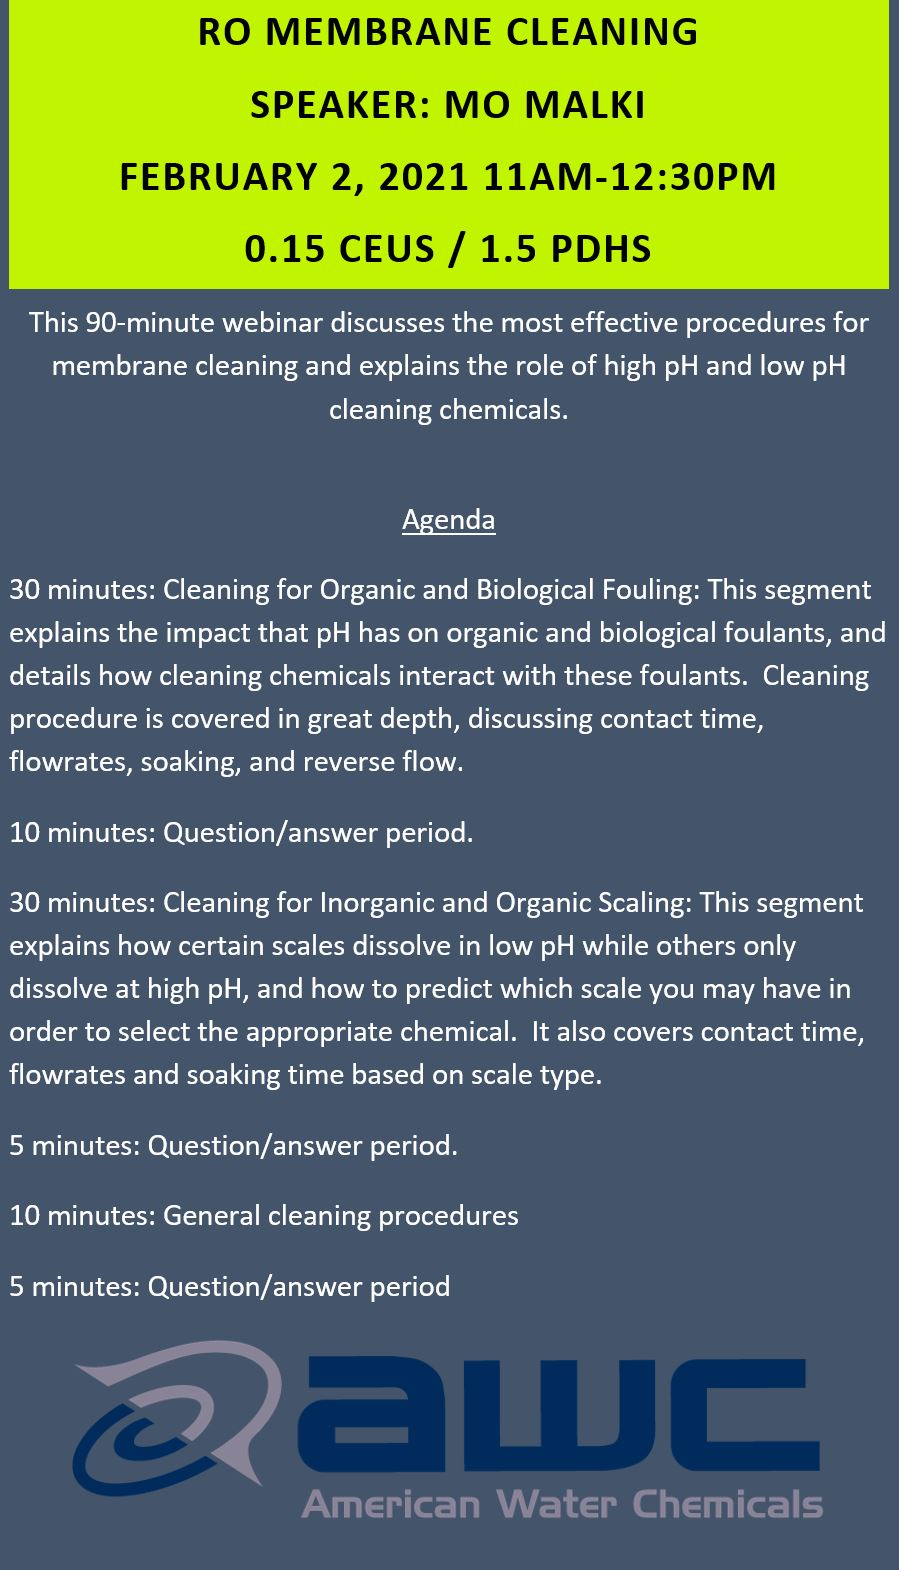 RO Membrane Cleaning